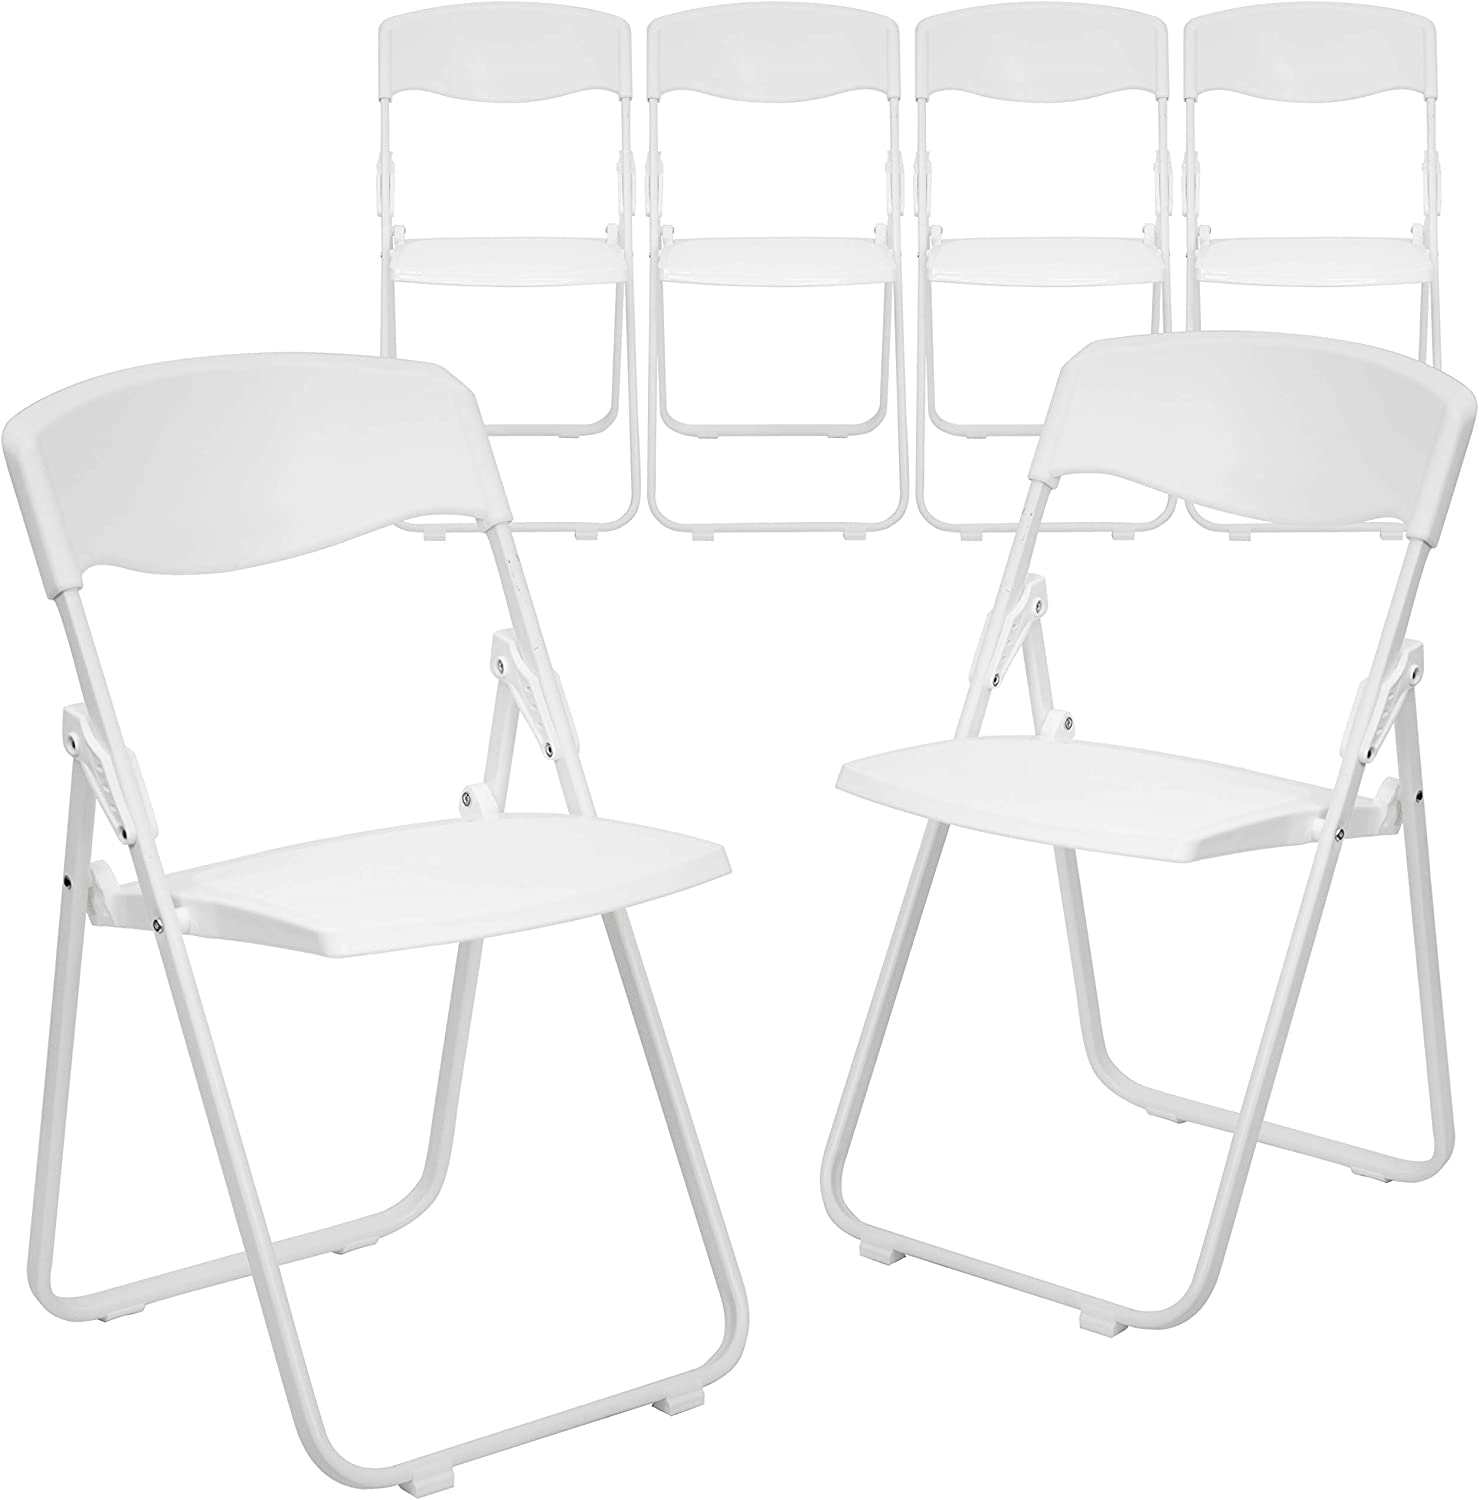 Amazon Com Flash Furniture 6 Pack Hercules Series 500 Lb Capacity Heavy Duty White Plastic Folding Chair With Built In Ganging Brackets Furniture Decor